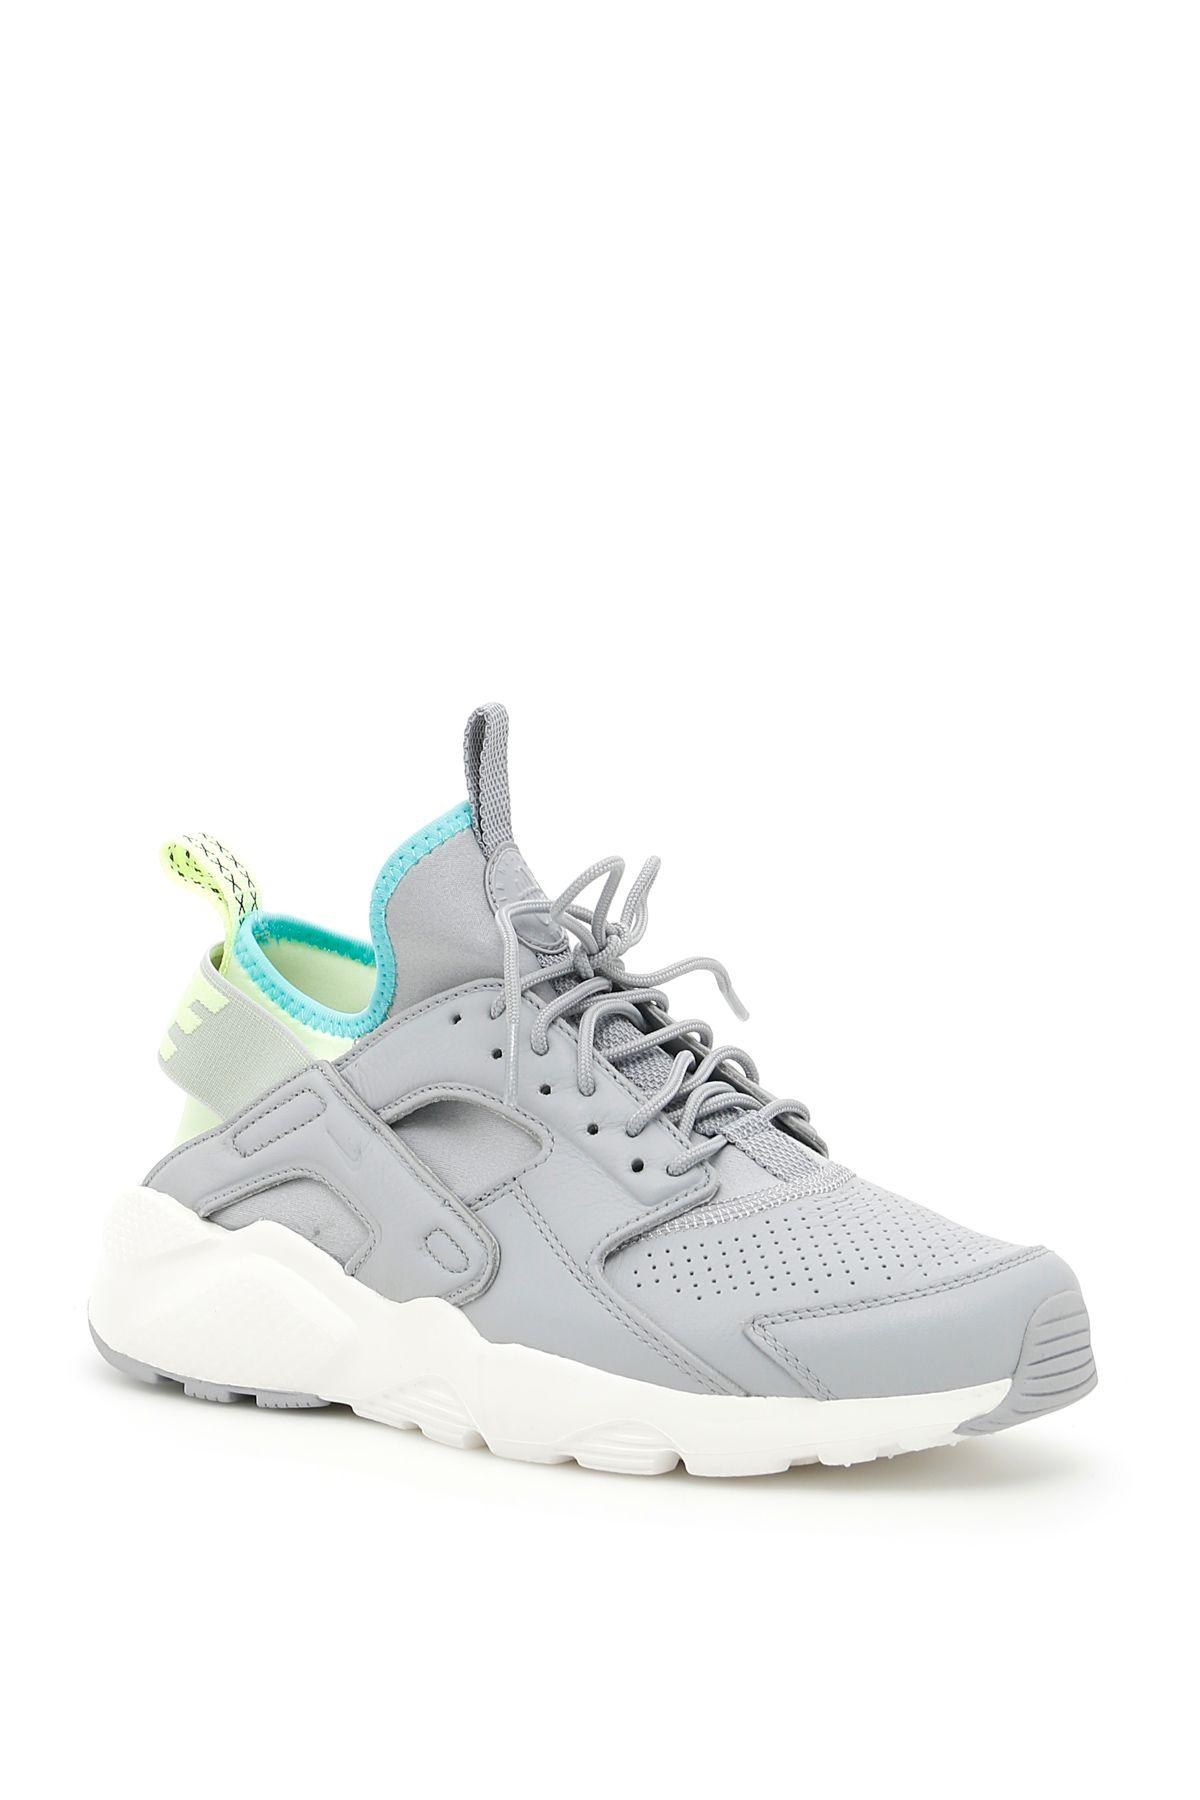 Nike Huarache Run Ultra Se Sneakers In Wolf Grey Wolf Grey Barely Vol|grigio